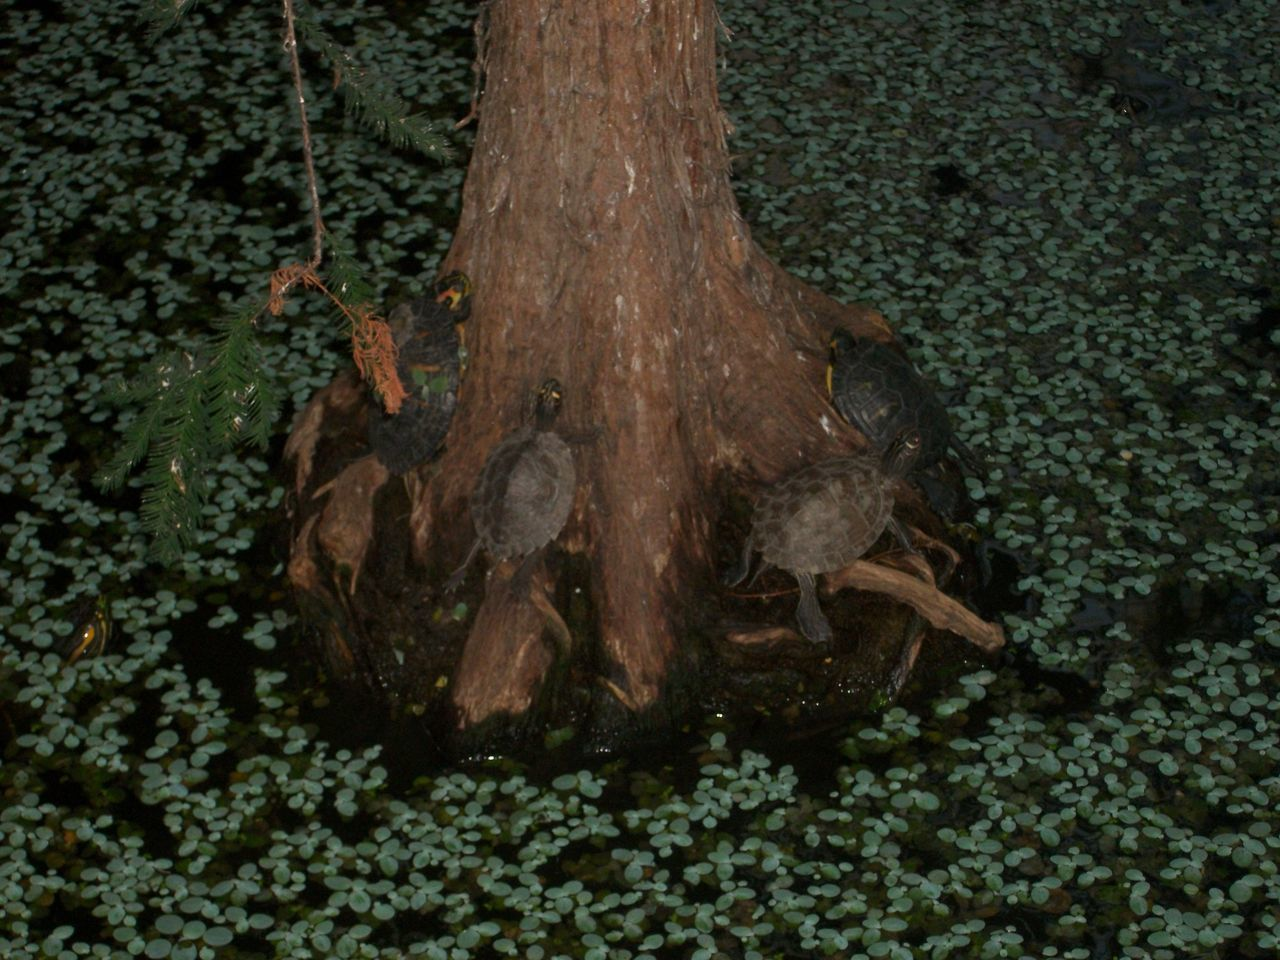 Atocha Train Station Animal Themes Atocha Close-up High Angle View Indoor Nature No People Tree Tree Trunk Turtle